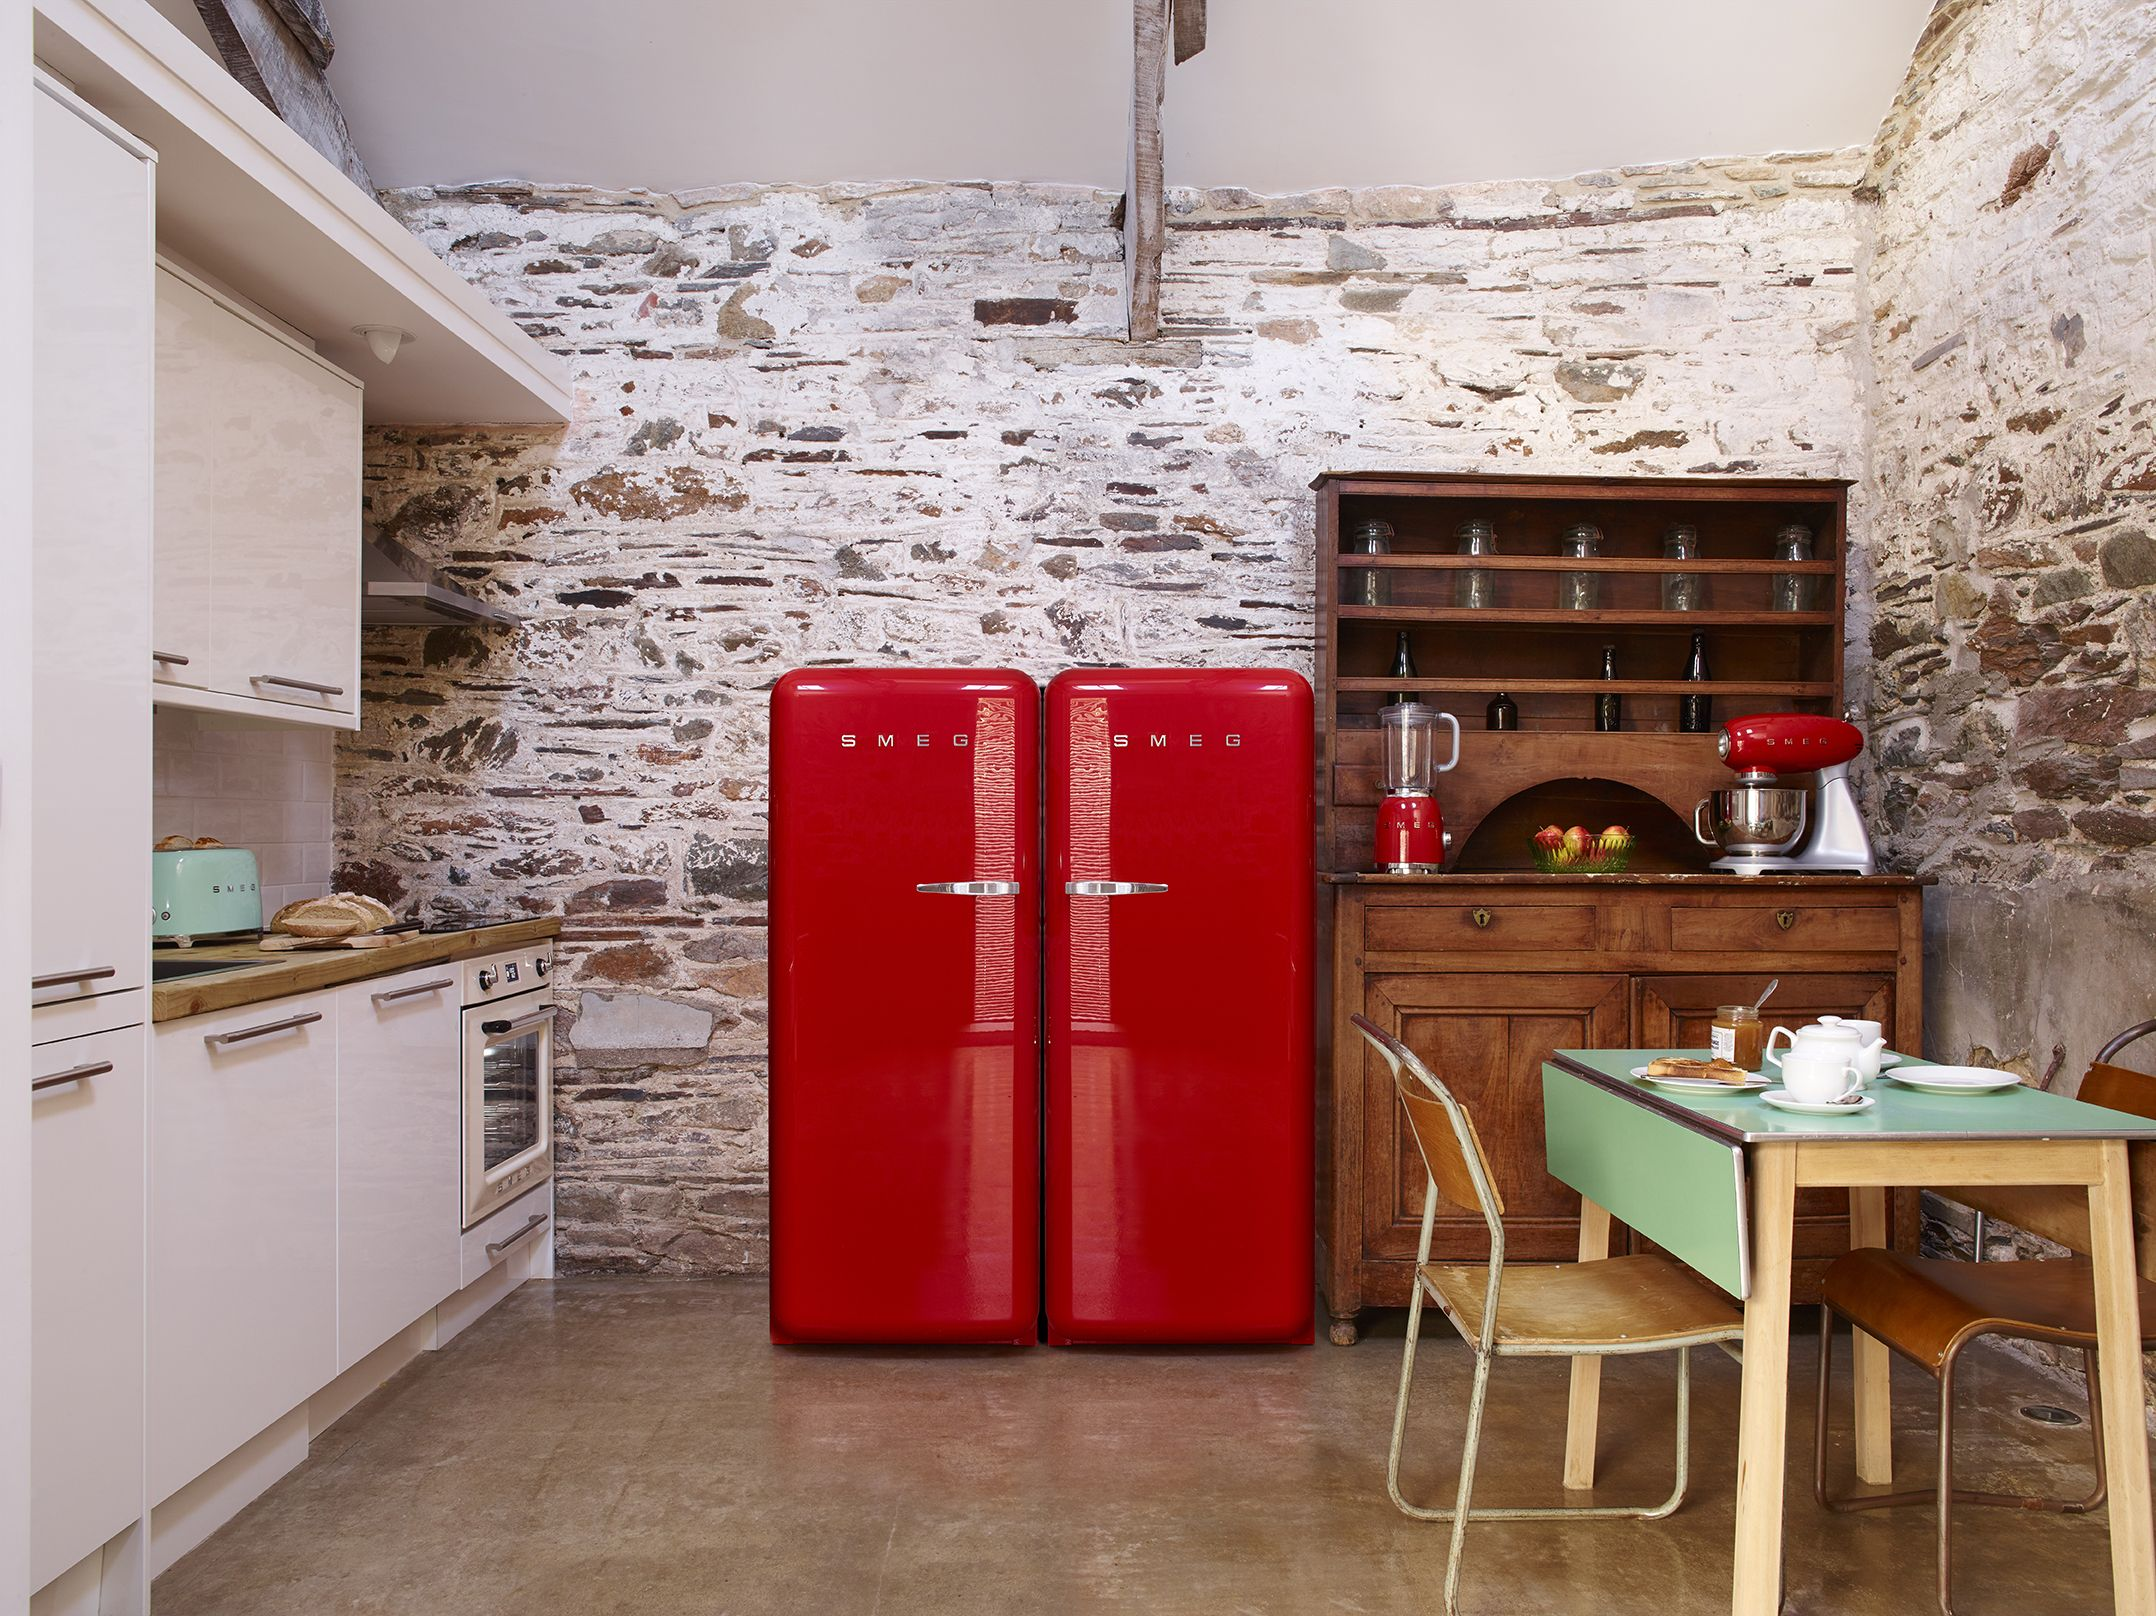 Cucina A Gas Smeg Vintage A Fantastic Lifestyle Setting Offered By Smeg 50 S Retro Style